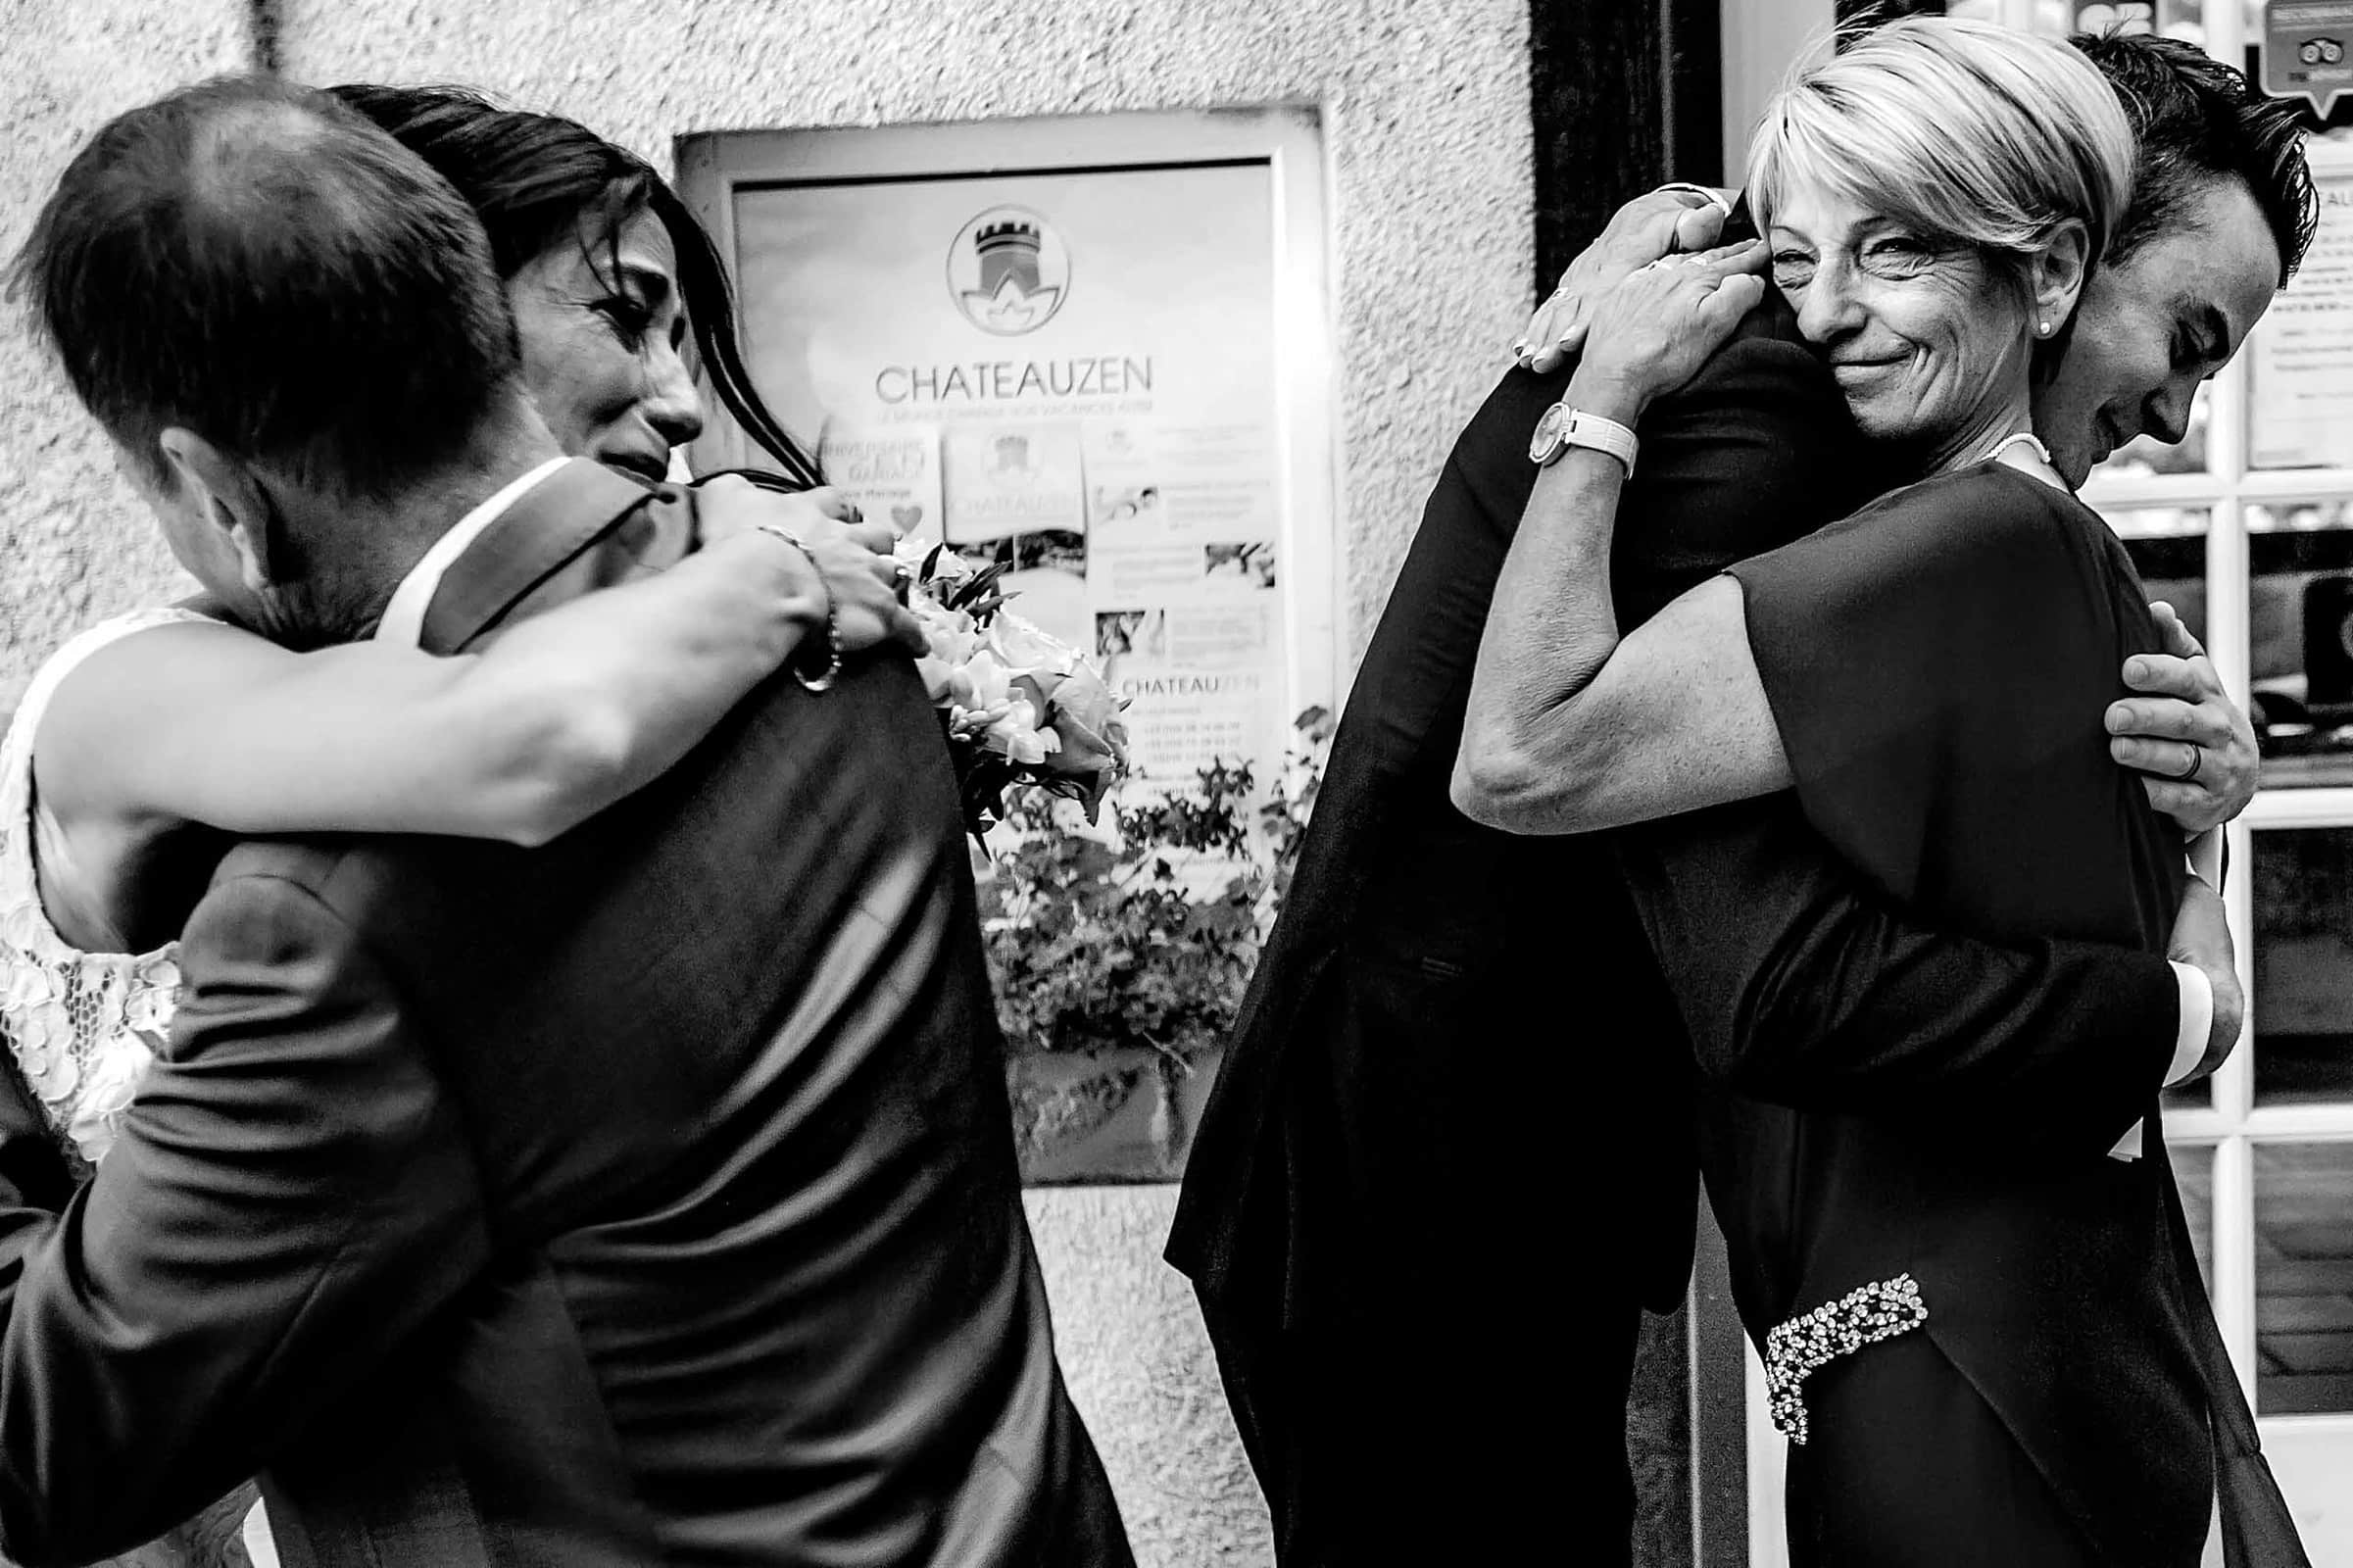 Emotional photo of parents hugging a bride and groom during a Chateau Zen wedding in the south of France near Montpelier.